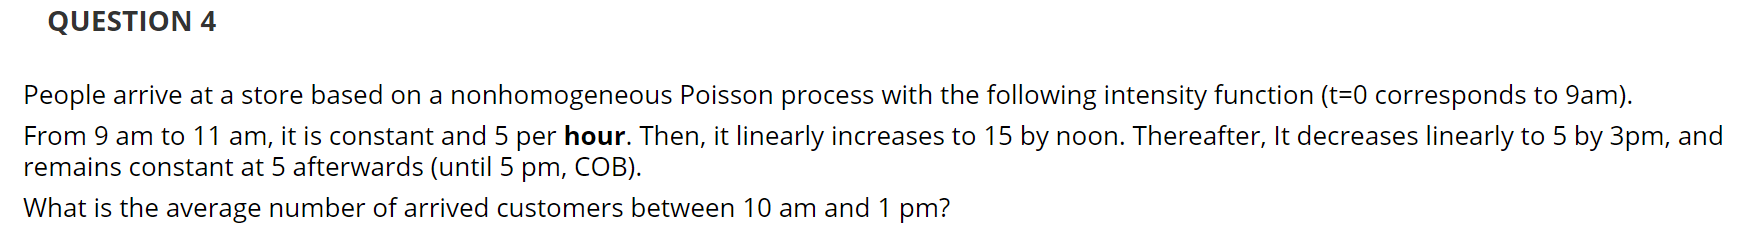 QUESTION 4 People arrive at a store based on a nonhomogeneous Poisson process with the following intensity function (t=0 corresponds to 9am). From 9 am to 11 am, it is constant and 5 per hour. Then, it linearly increases to 15 by noon. Thereafter, It decreases linearly to 5 by 3pm, and remains constant at 5 afterwards (until 5 pm, COB). What is the average number of arrived customers between 10 am and 1 pm?